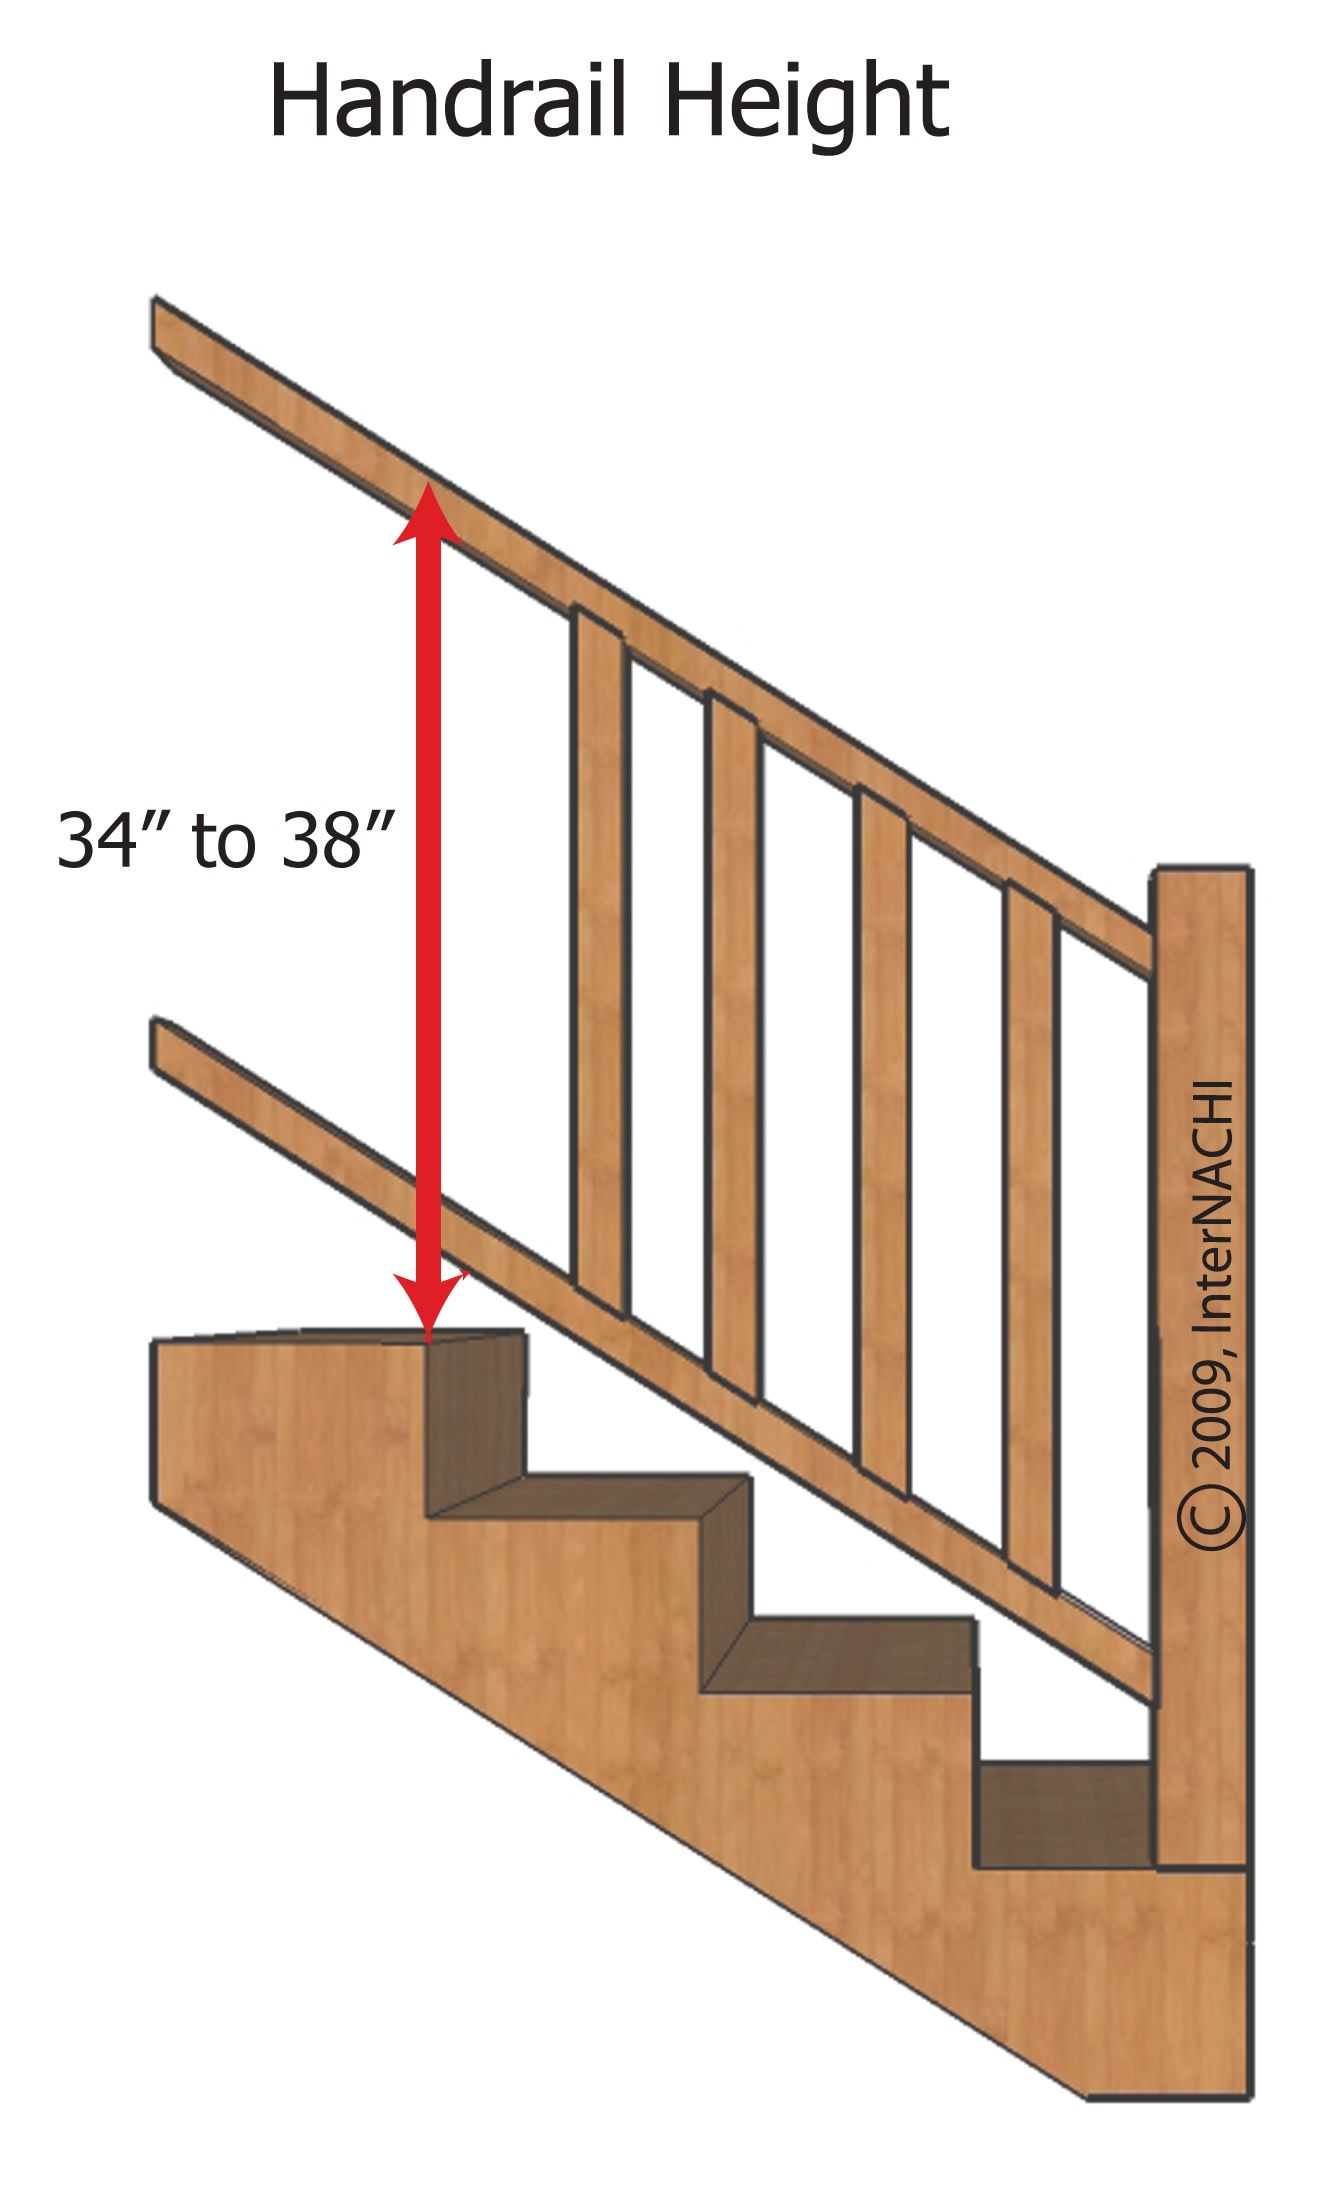 Handrail height.